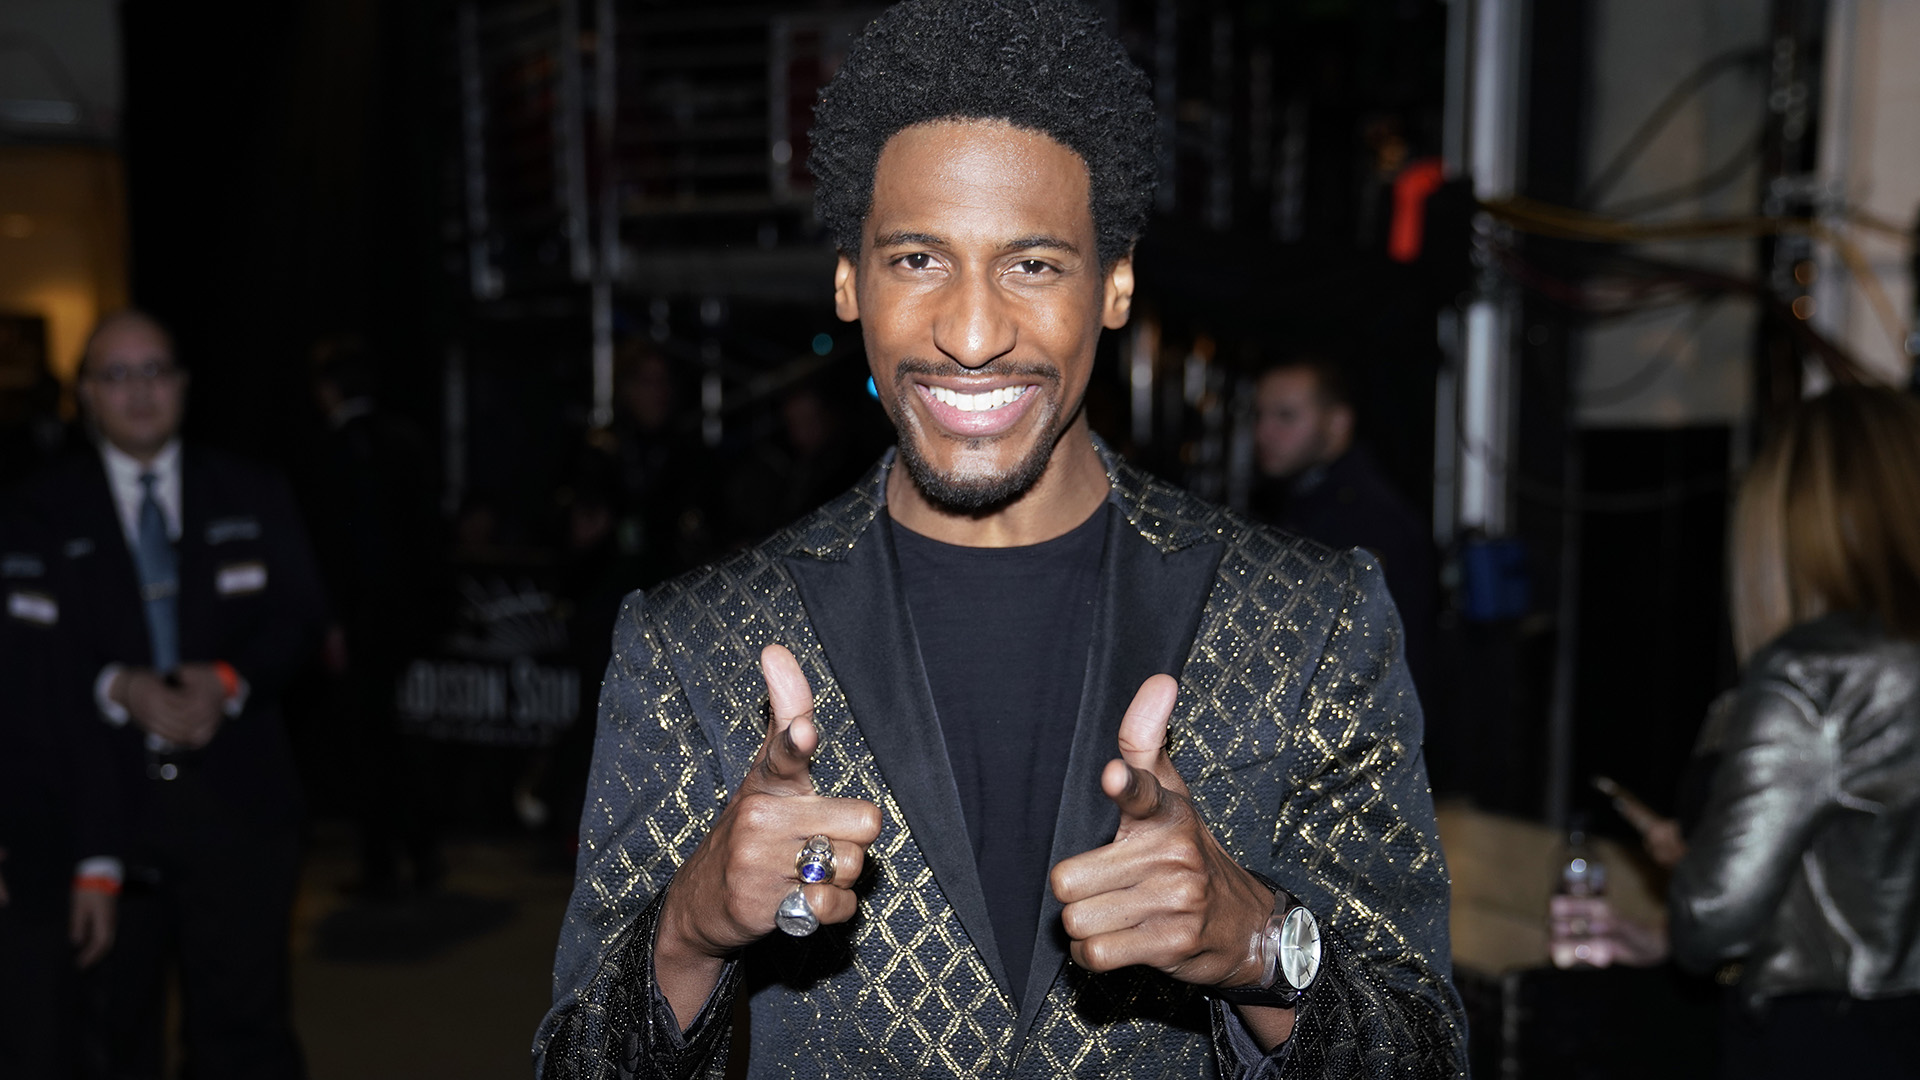 The Late Show with Stephen Colbert bandleader Jon Batiste flashes his pearly whites backstage.